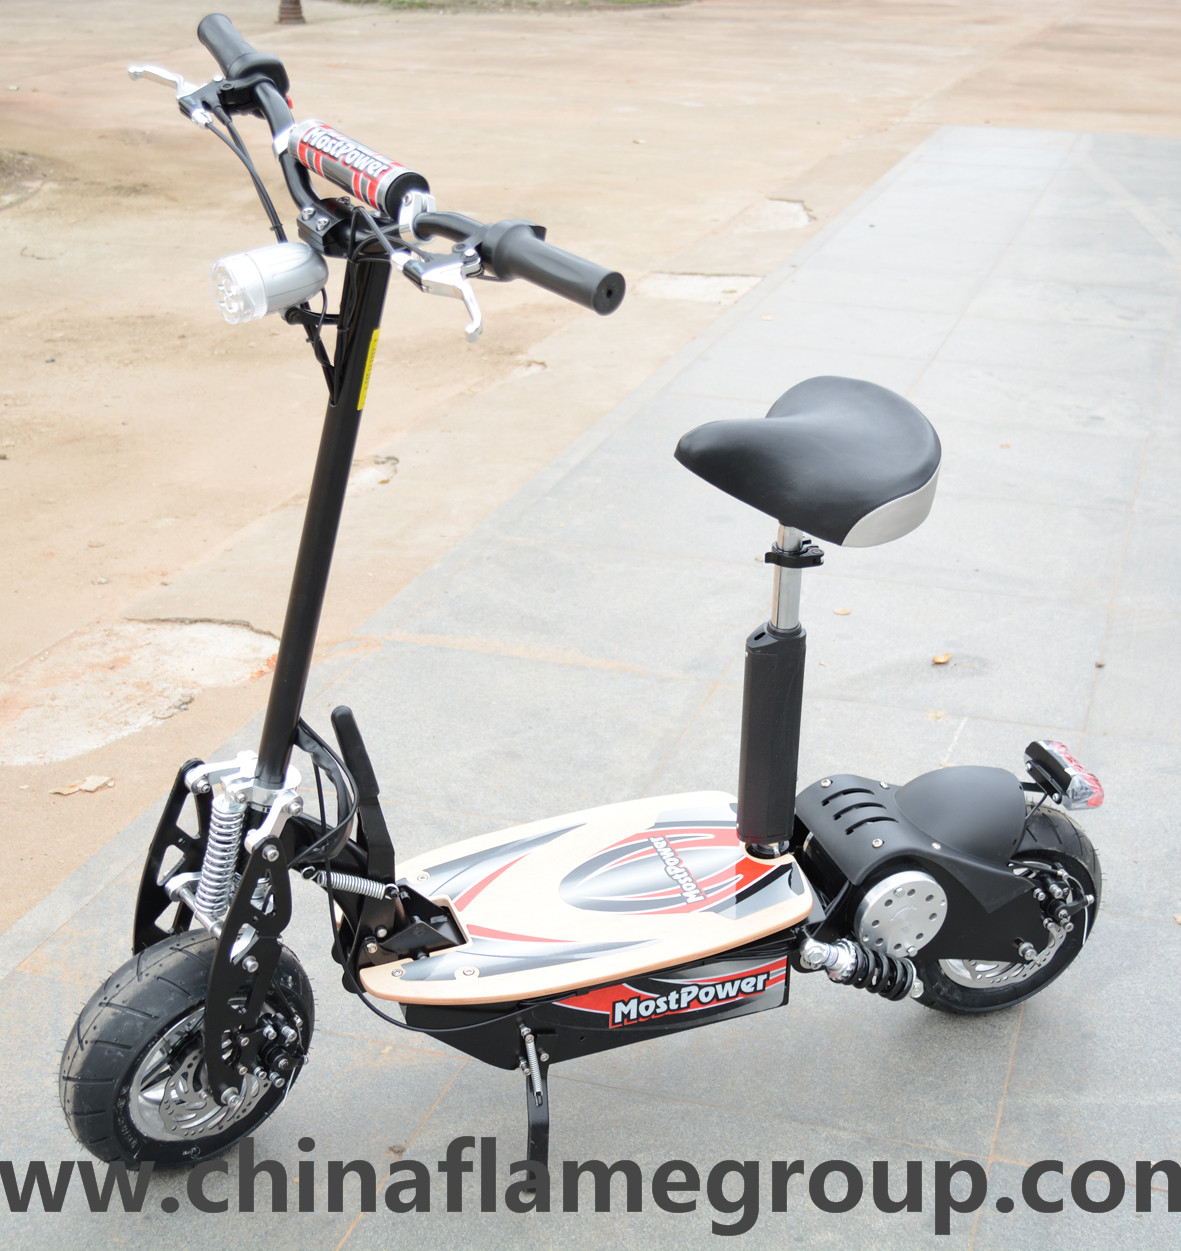 electric scooter bikes mini electric scooter scooter bike. Black Bedroom Furniture Sets. Home Design Ideas